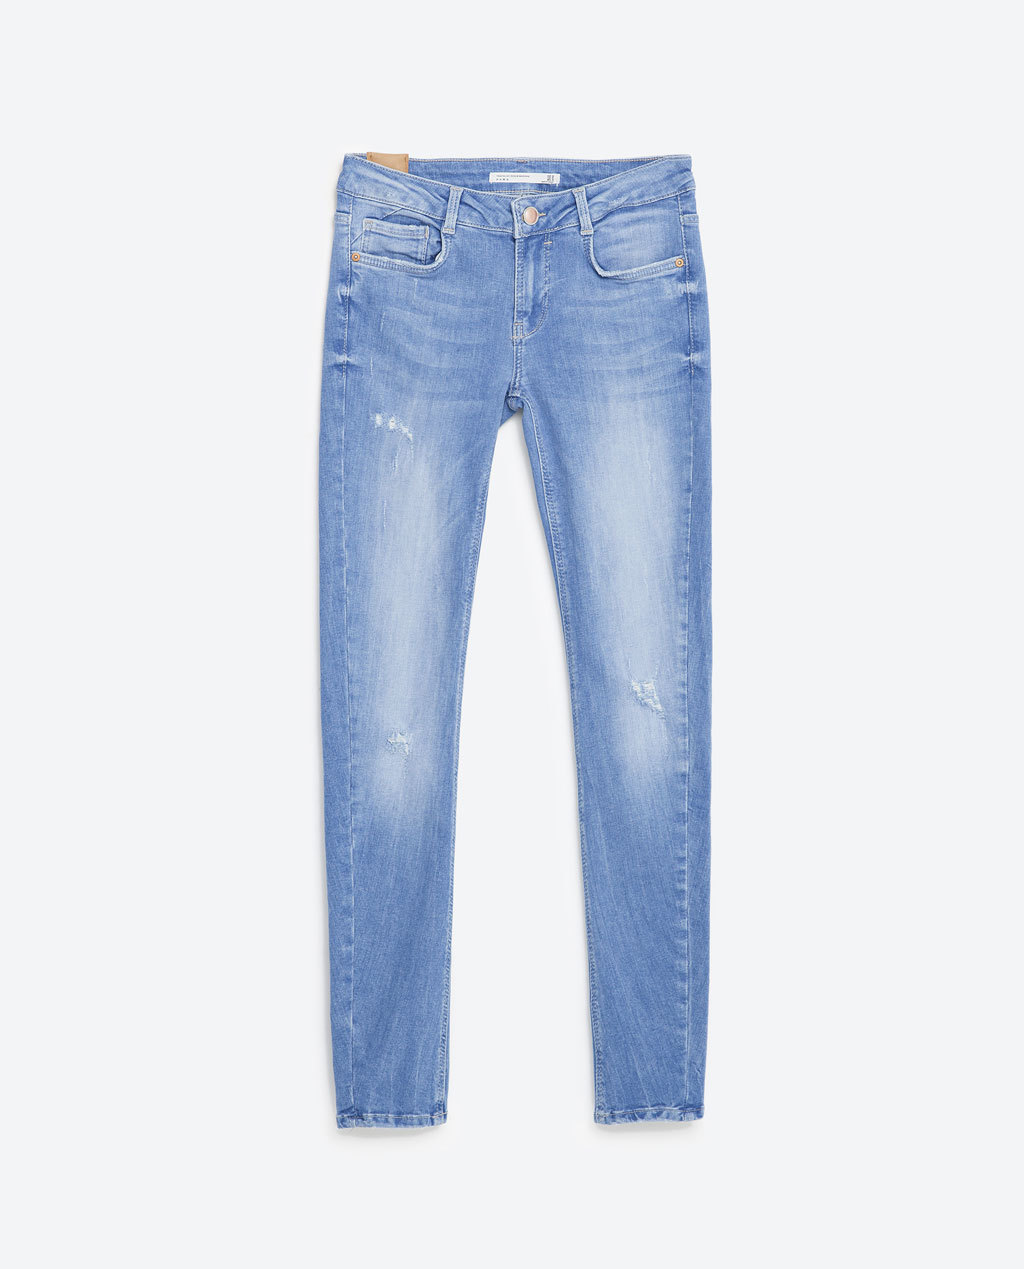 Push Up Embrace Jeans - style: skinny leg; length: standard; pattern: plain; pocket detail: traditional 5 pocket; waist: mid/regular rise; predominant colour: denim; occasions: casual; fibres: cotton - stretch; jeans detail: washed/faded; texture group: denim; pattern type: fabric; season: s/s 2016